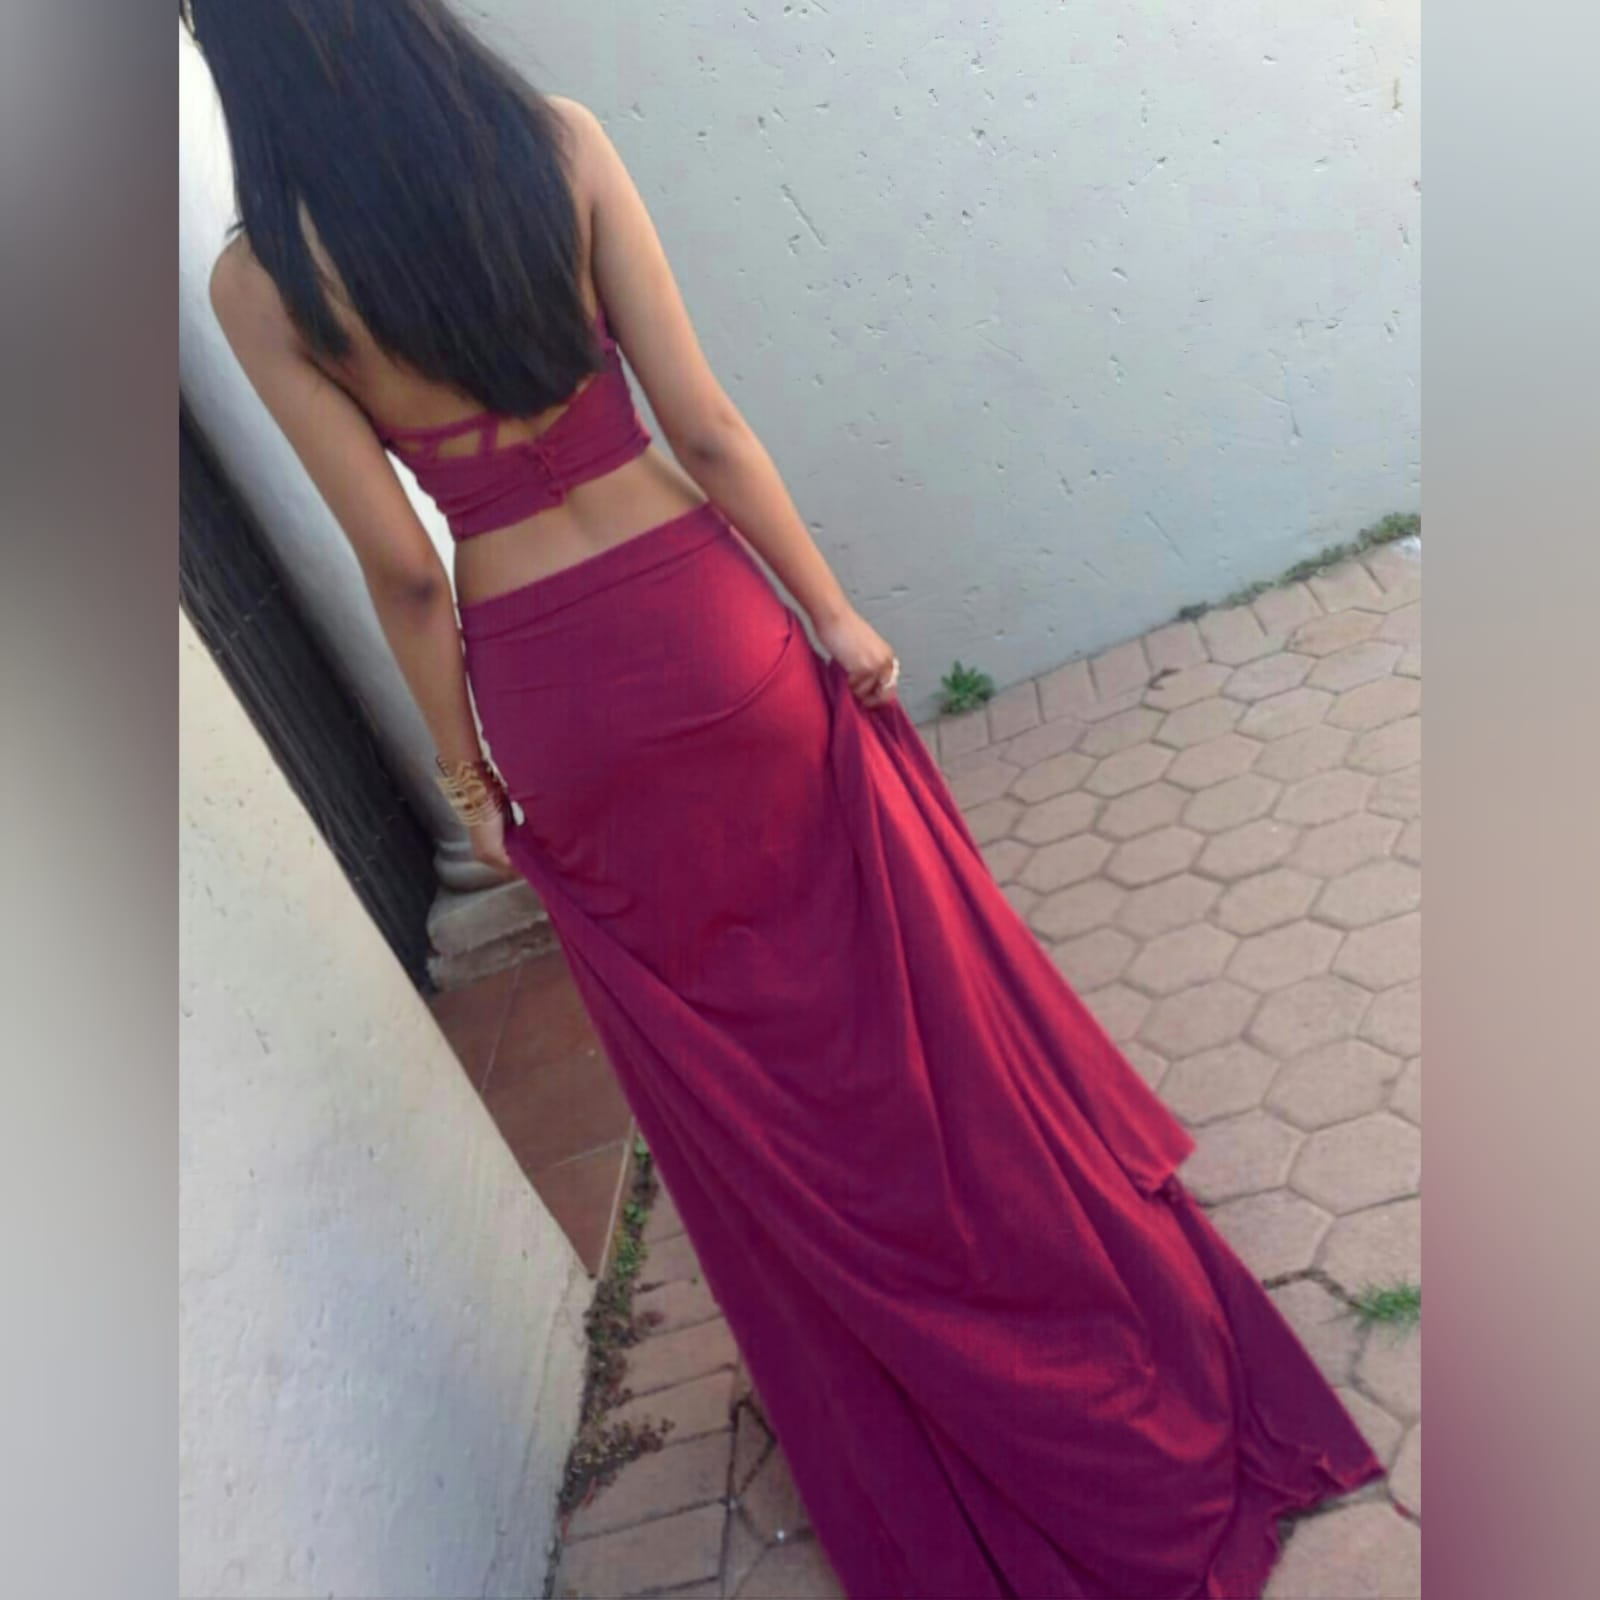 2 piece plum prom dance dress 2 2 piece plum prom dance dress. Halter neck crop top. Straps from the crop top create a cross that joins to the skirt. Skirt fitted till the hip and then very flowy with a long, wide train.